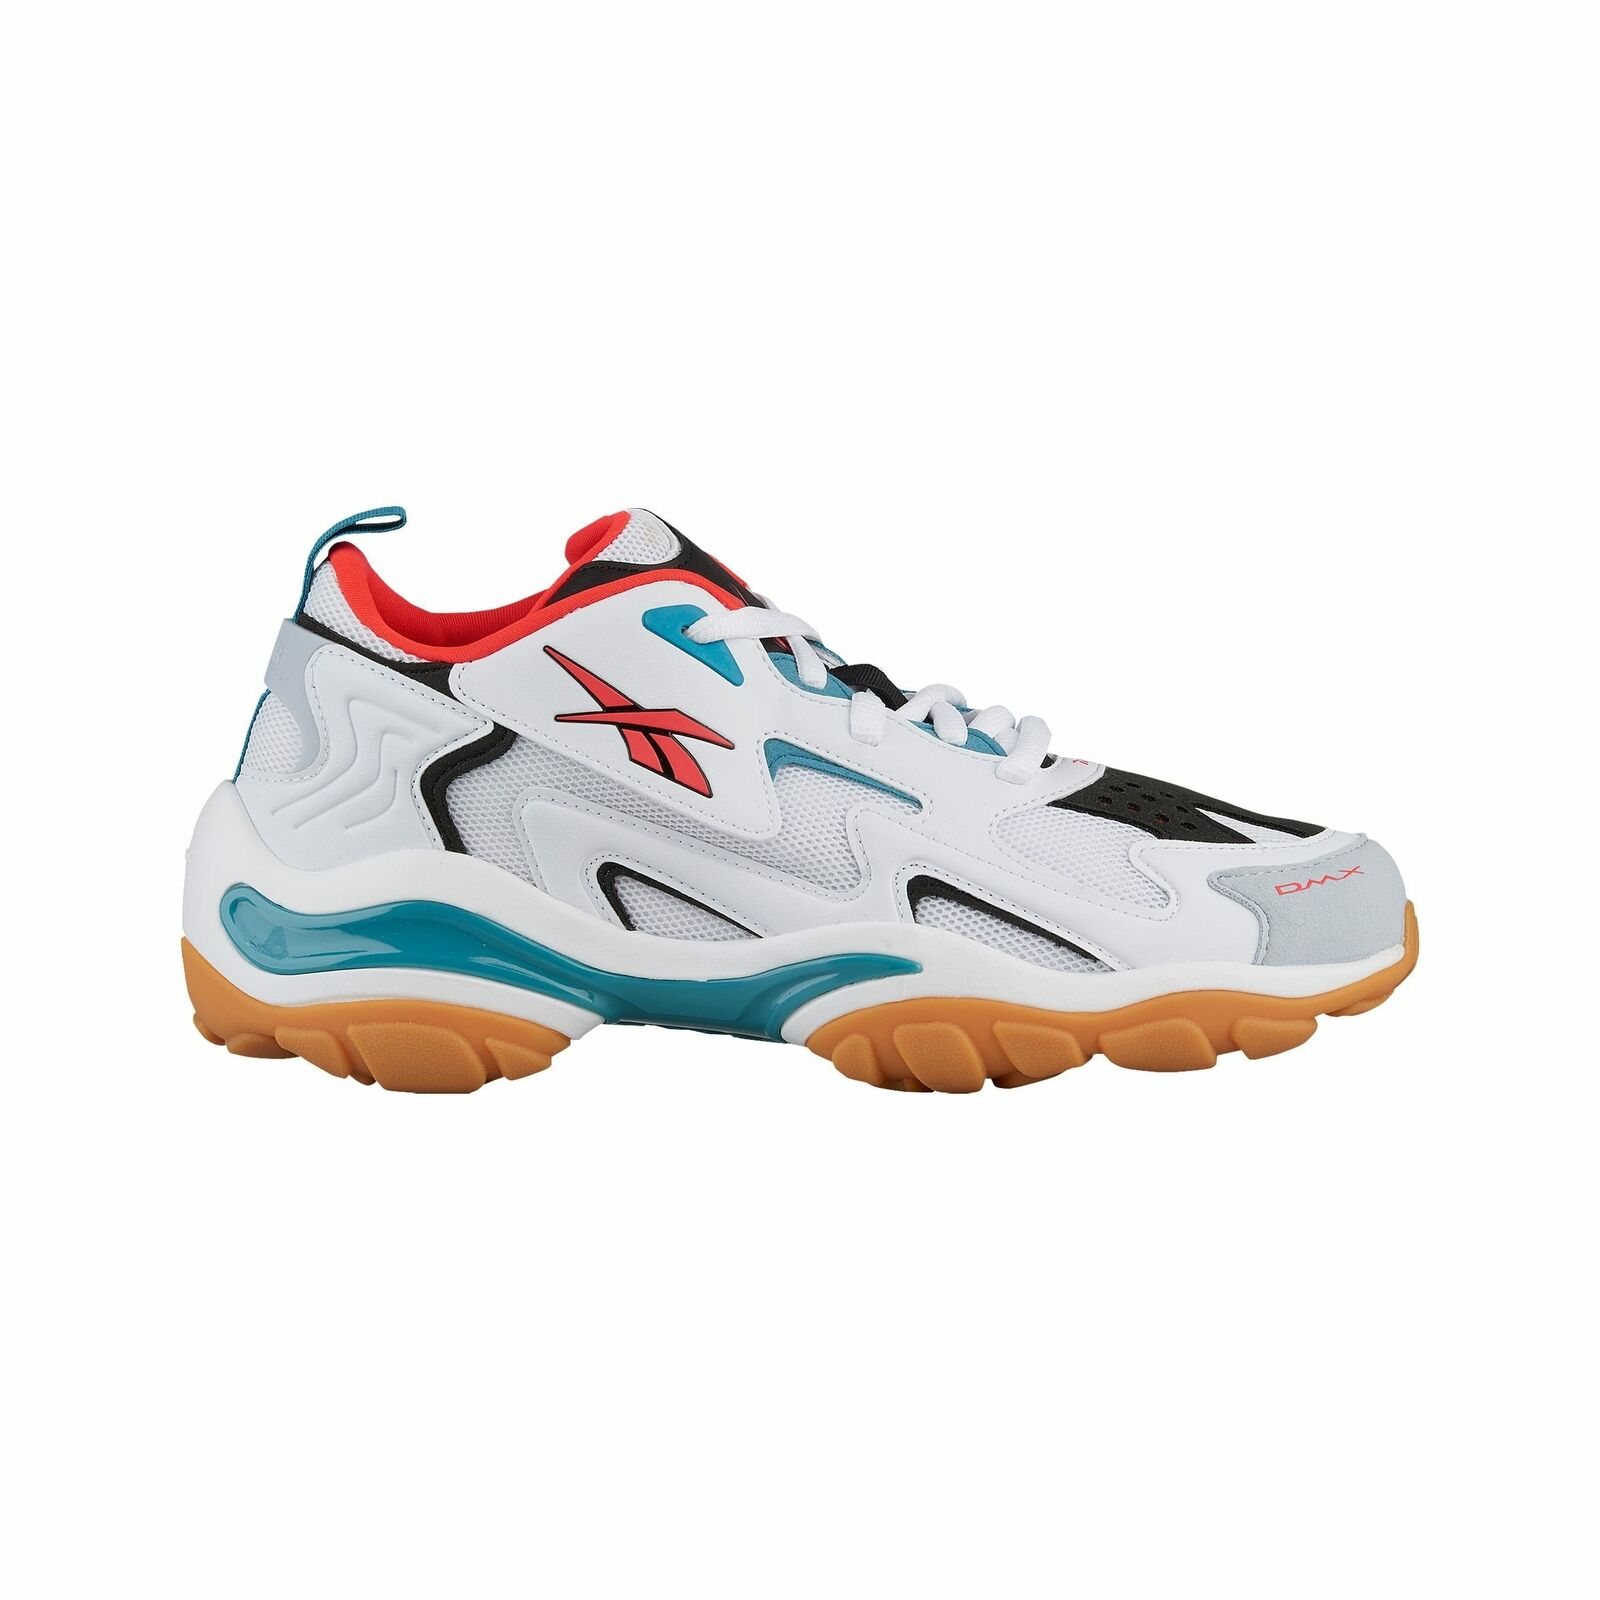 Reebok DMX Run 1600 - Men's White Black Neon Red Mineral Mist CN7738